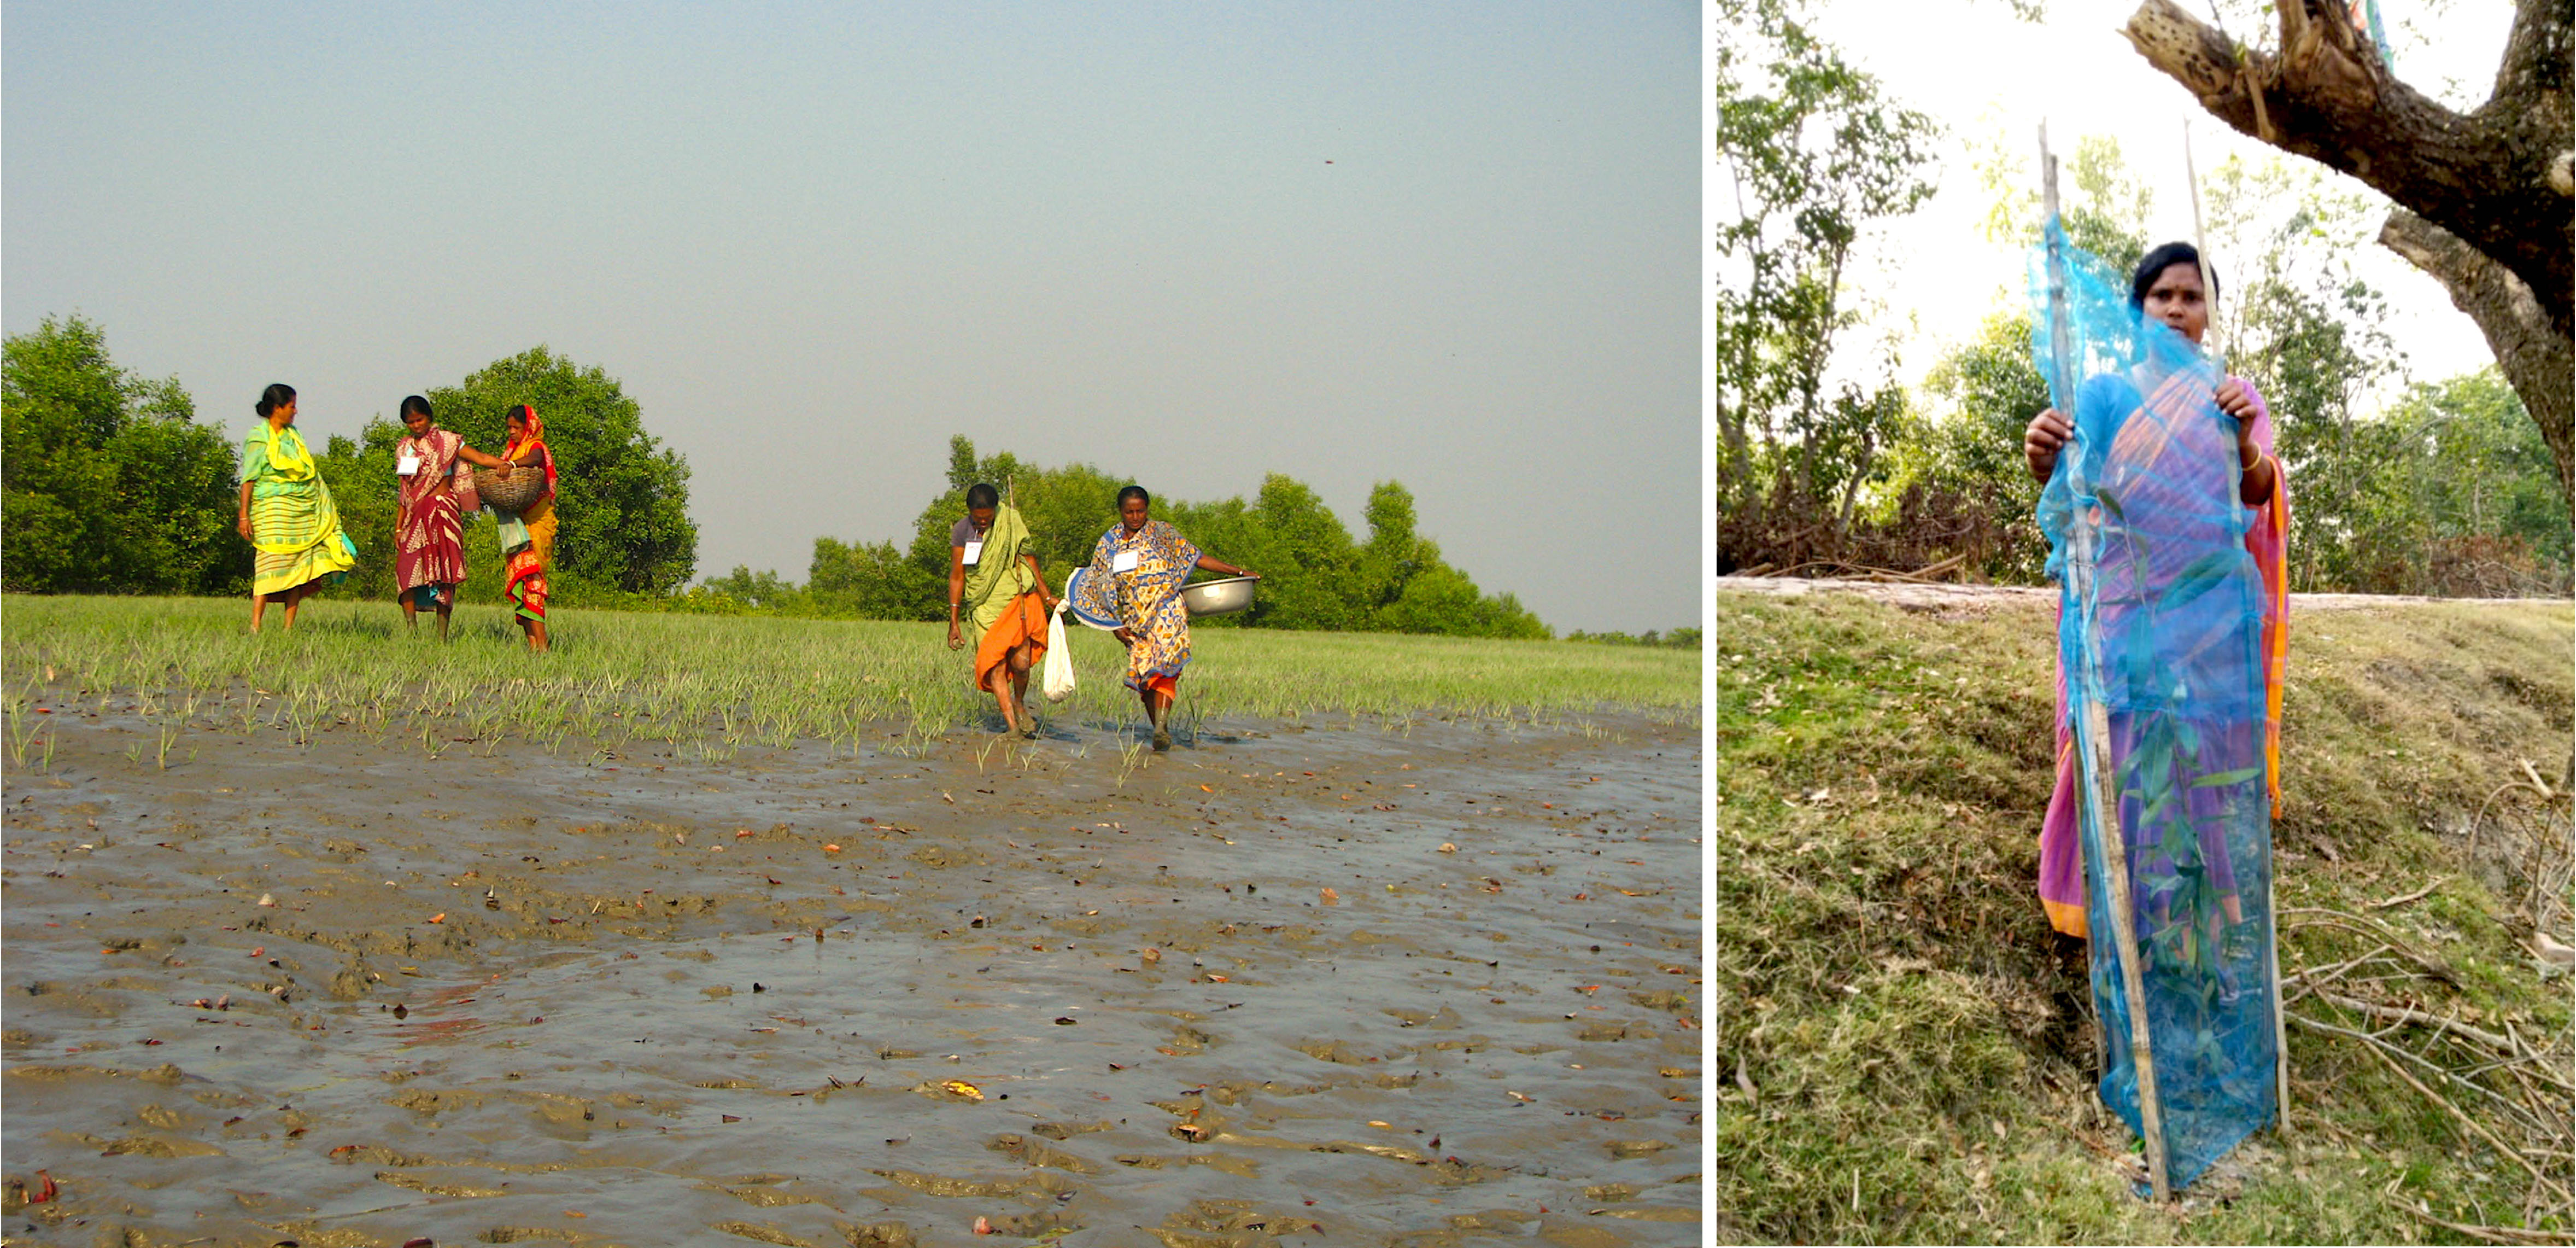 Women from Annpur, Patharpara, and Rajatjubilee on Gosaba island are leading efforts to revive the Sundari tree by planting saplings on vacant land outside their villages. They fence off the saplings with bamboo strips and net fencing to protect them from grazing cows and goats.  Photos: Moushumi Basu